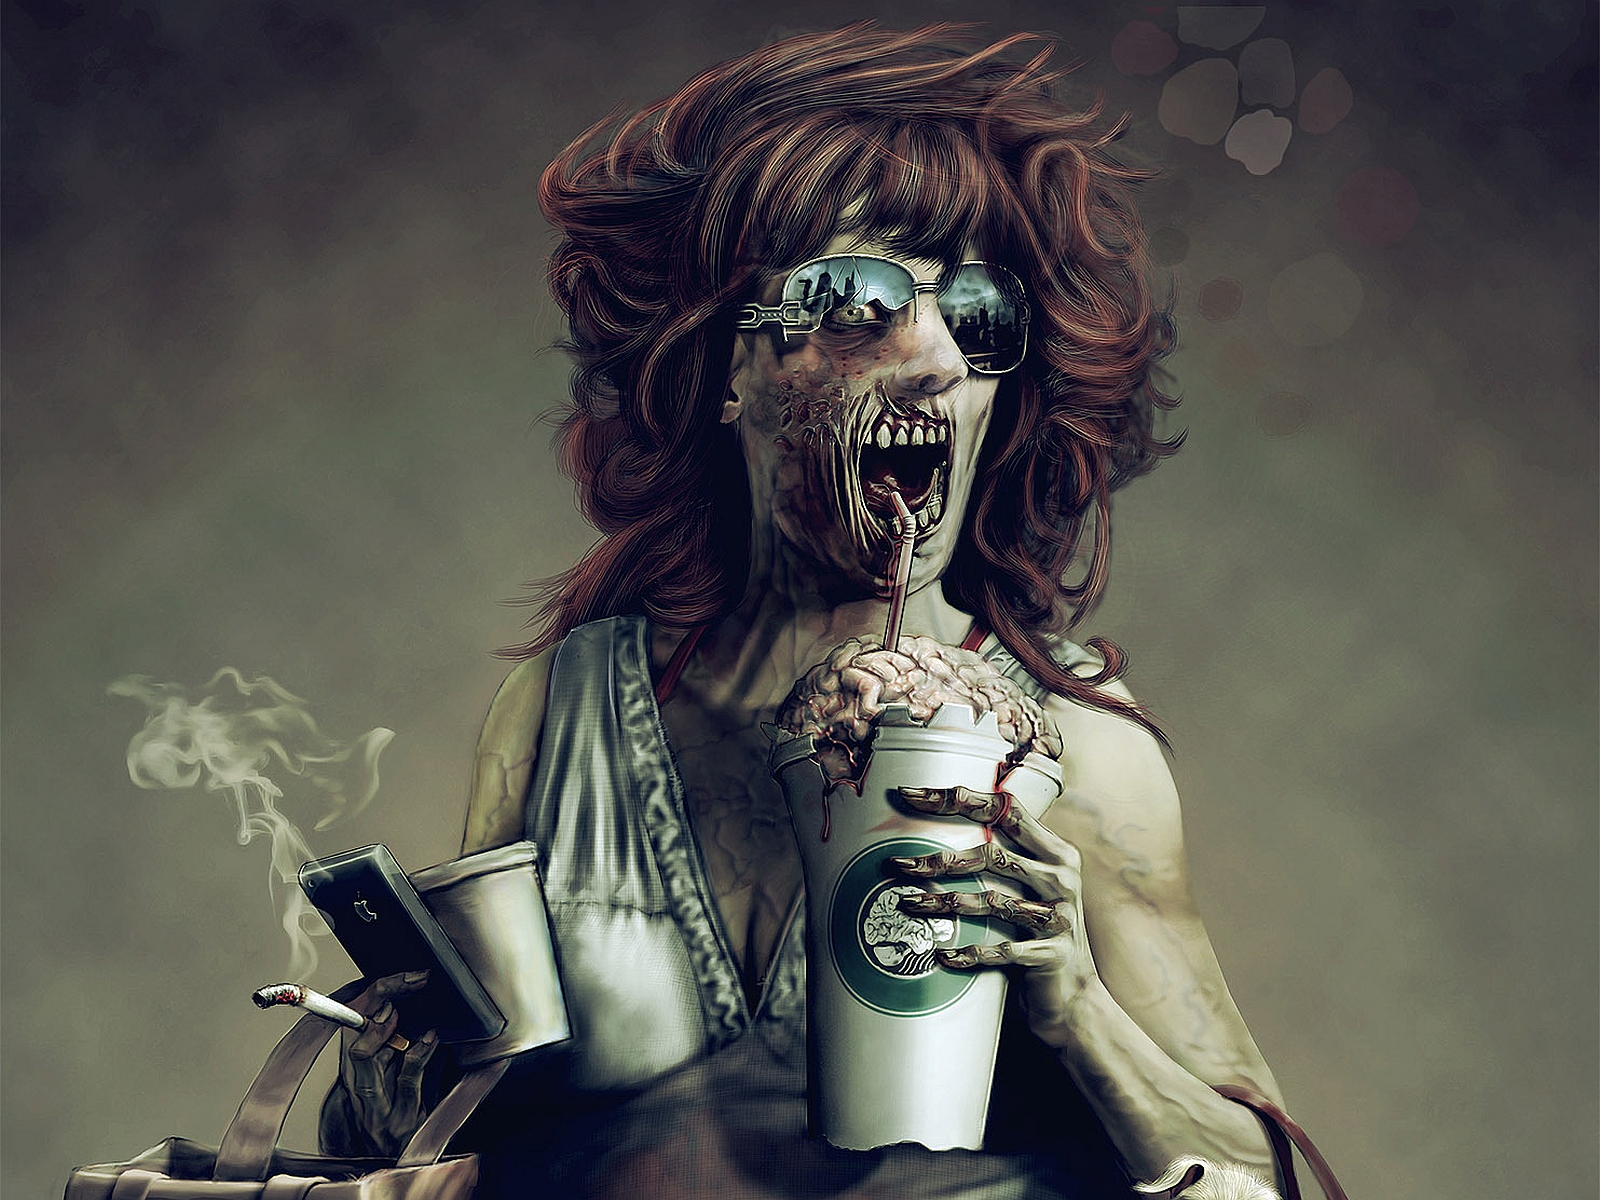 Free Download Dark Zombie Wallpaper 1600x1200 For Your Desktop